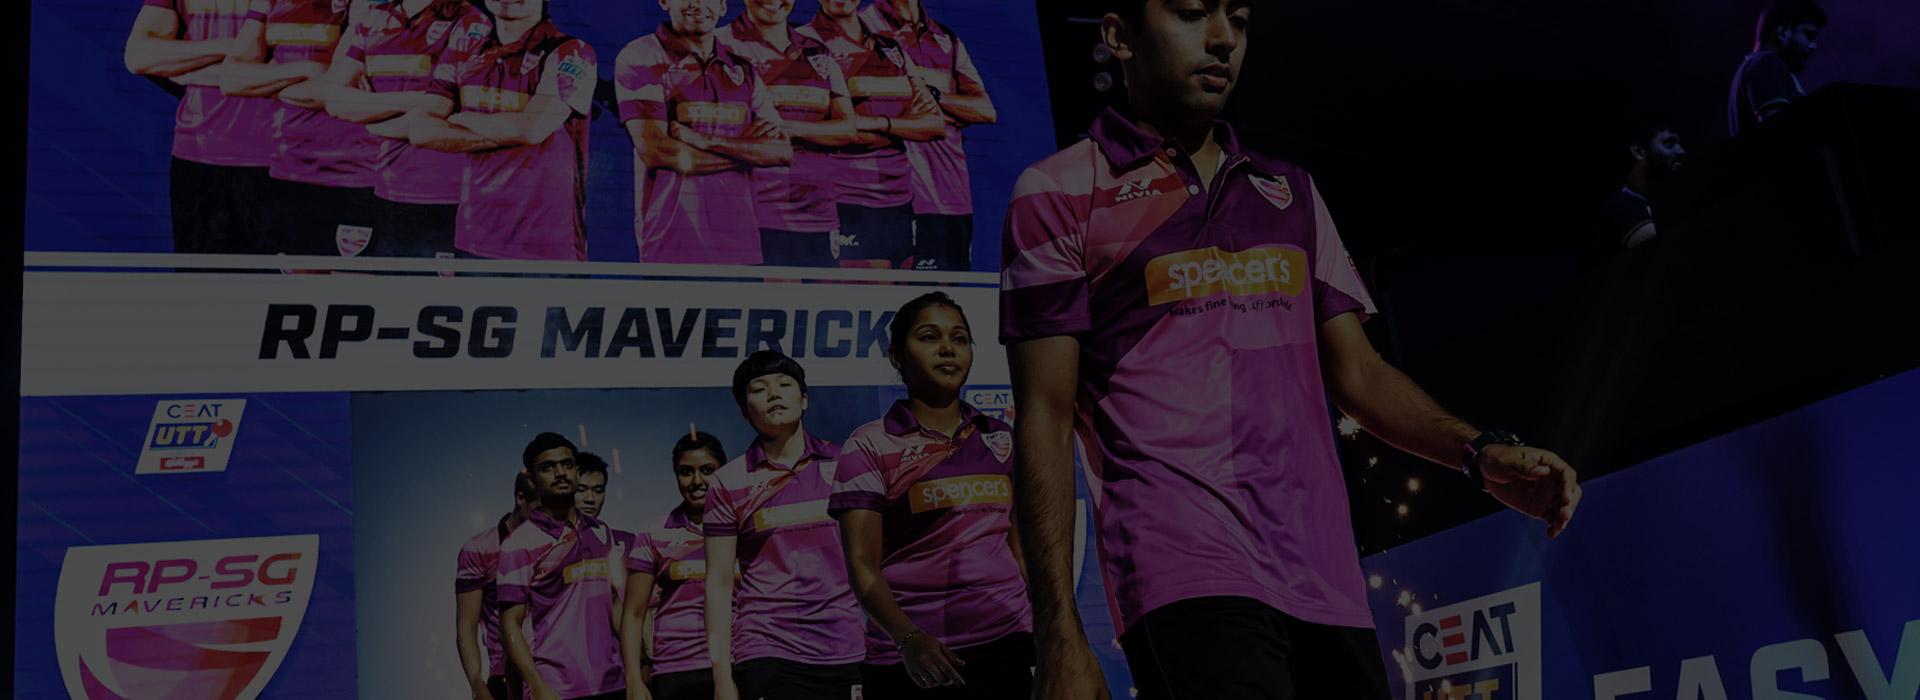 Formed RPSG Mavericks, a table tennis team representing Kolkata, one of the six in the country.